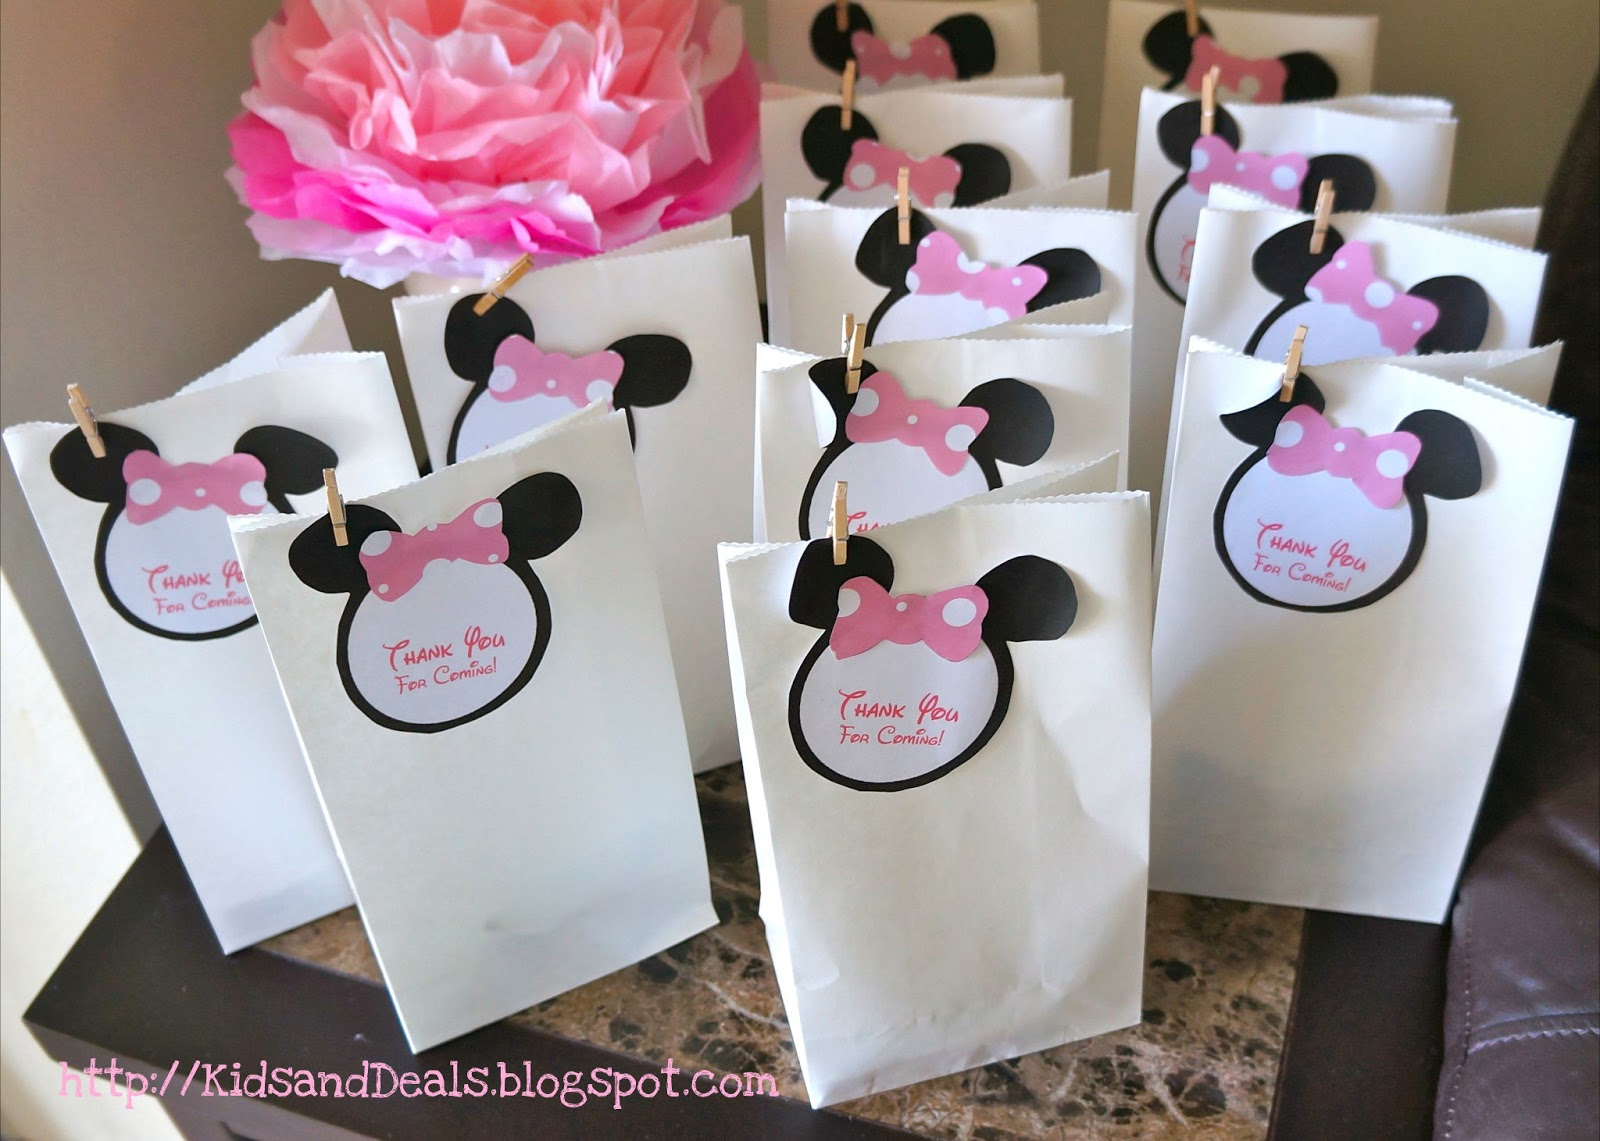 Kids and Deals: A Minnie Mouse Birthday Party